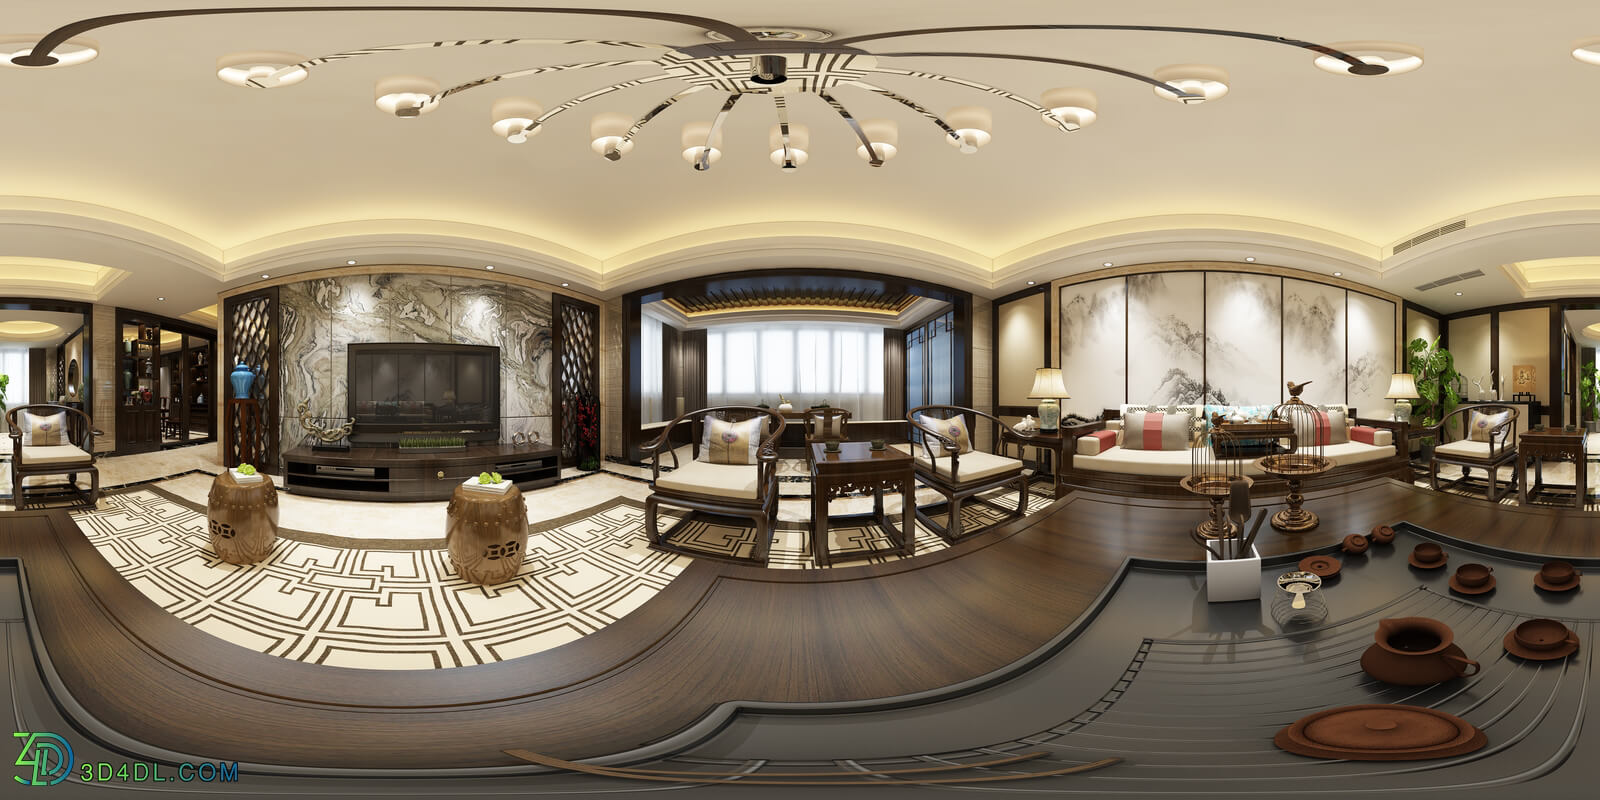 3D66 360° 2017 Living Dining Kitchen Room New China Styles Vol 1 HX001